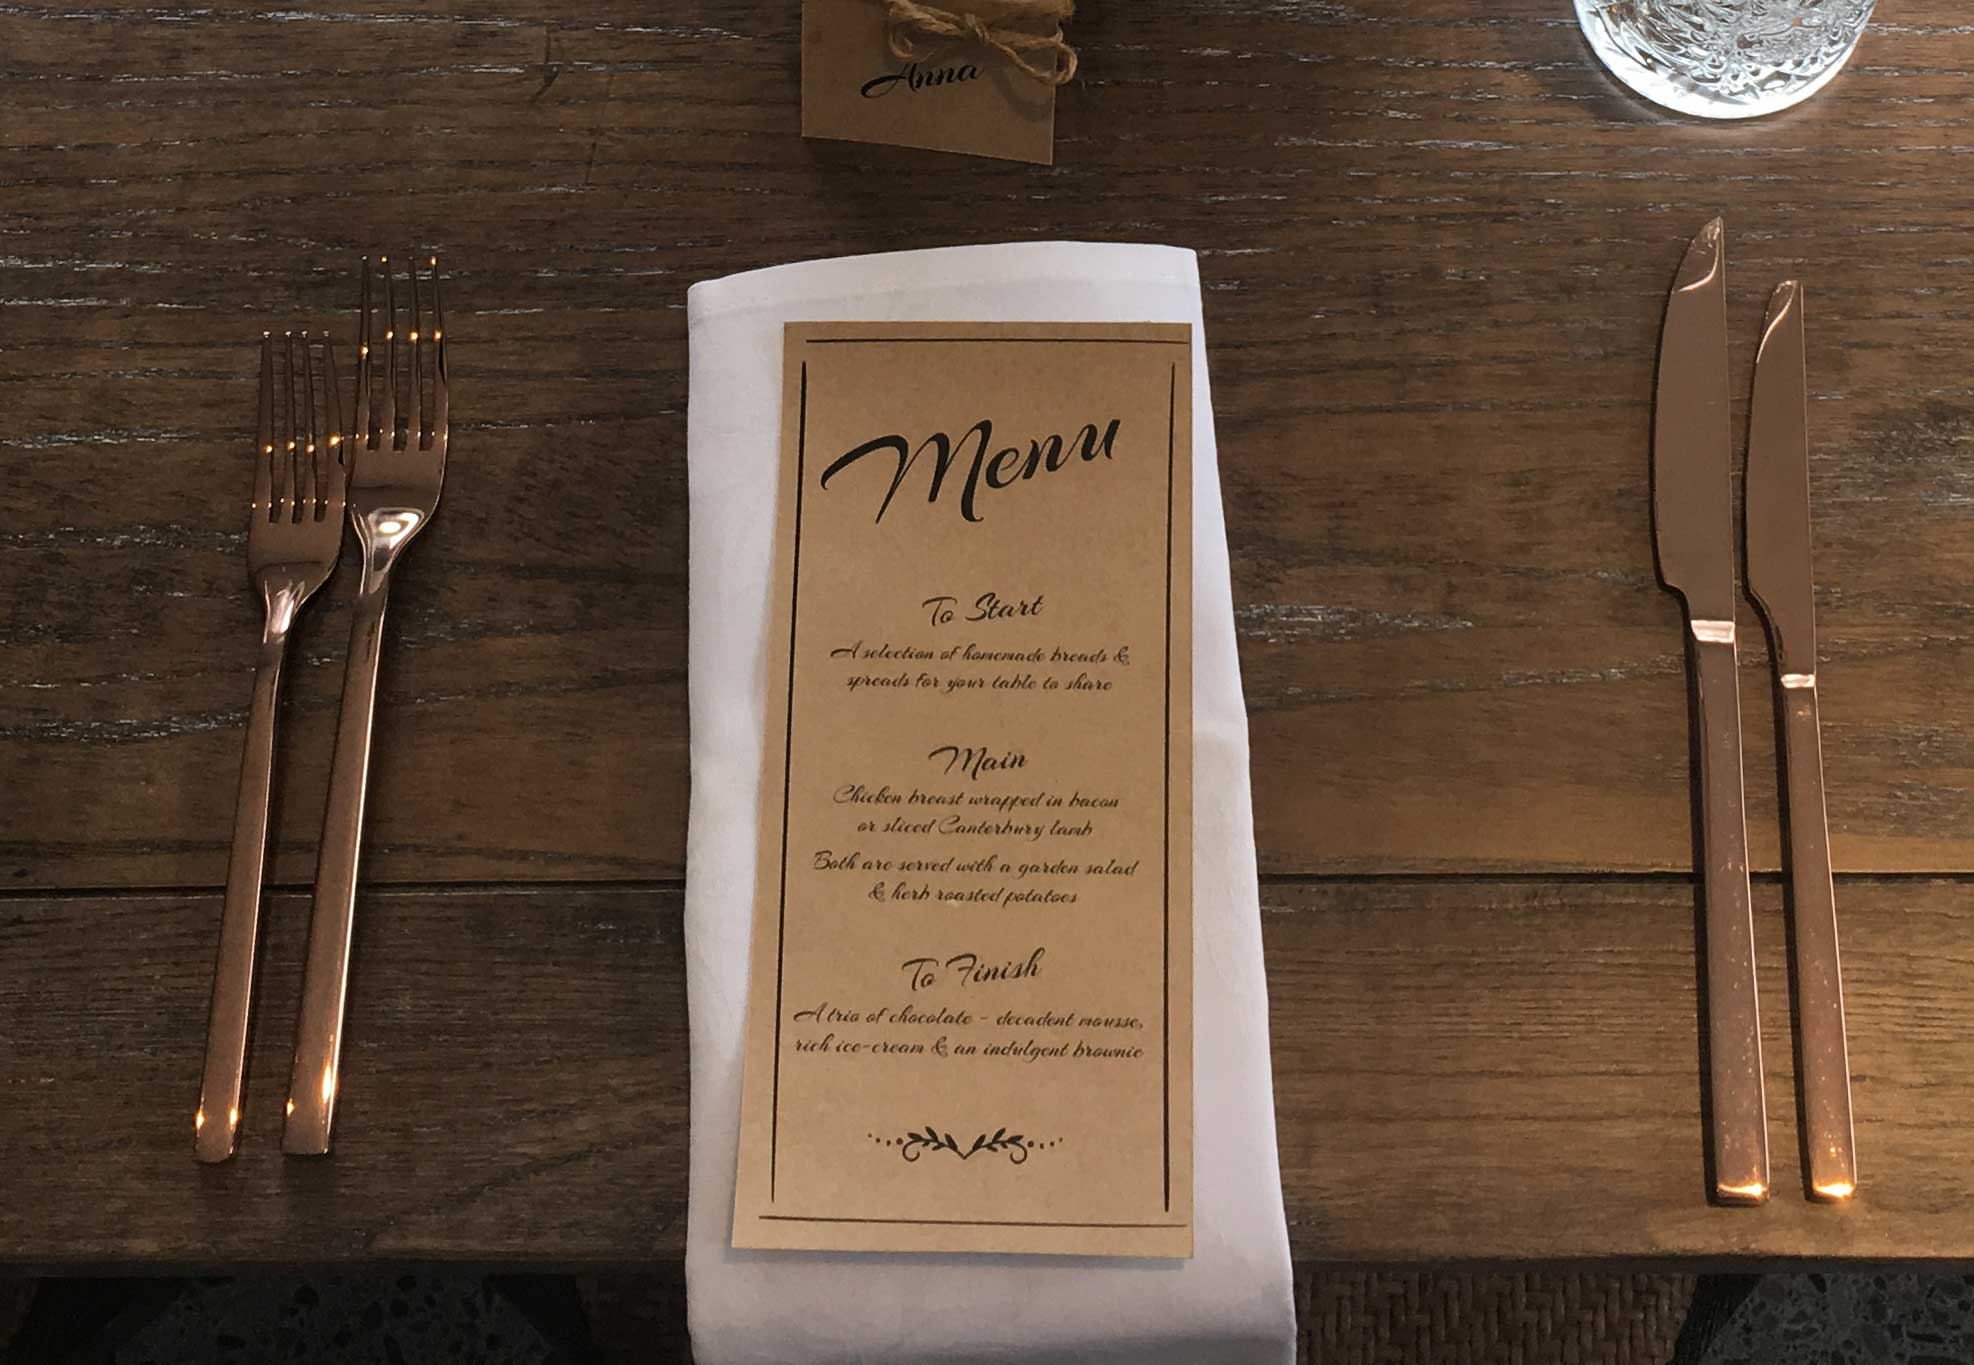 silk-estate-marquee-weddings-and-events-styling-and-hire-copper-cutlery-4